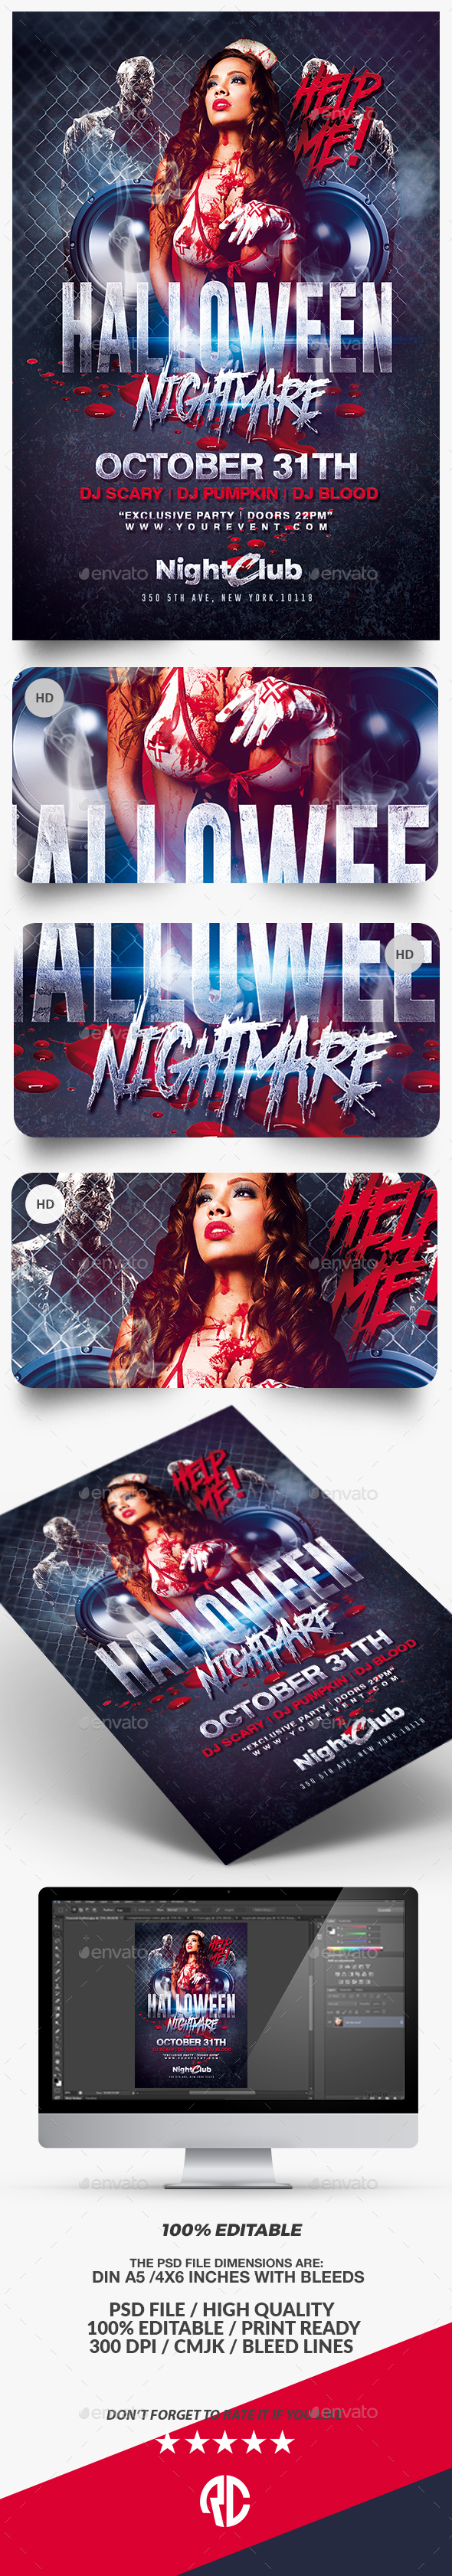 Halloween Nightmare Party   Flyer Template - Clubs & Parties Events